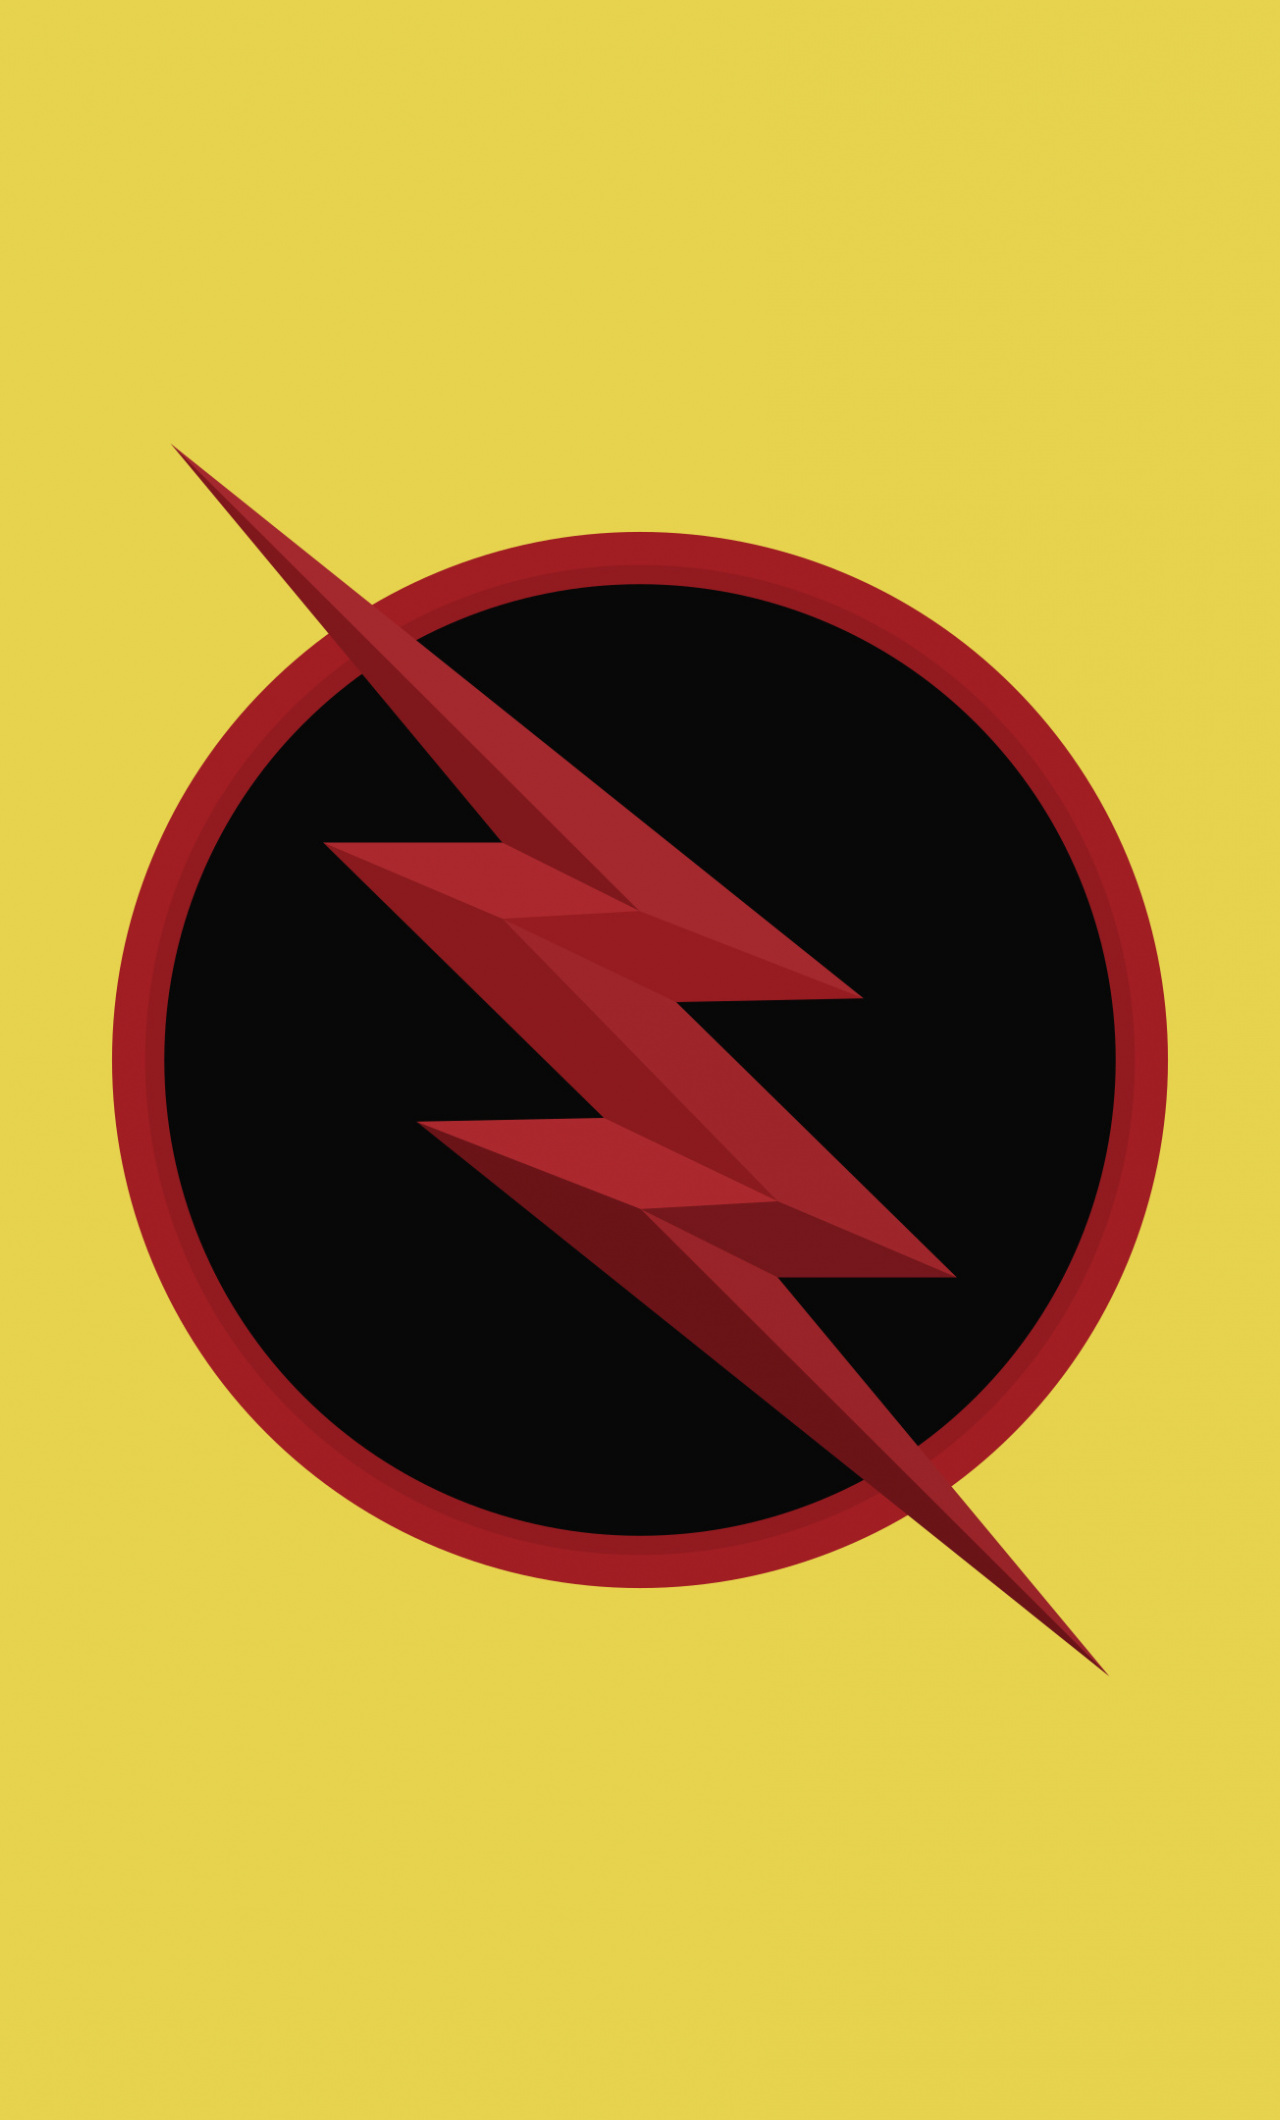 Reverse Flash Logo Dc Comics Minimal Wallpaper Reverse Flash